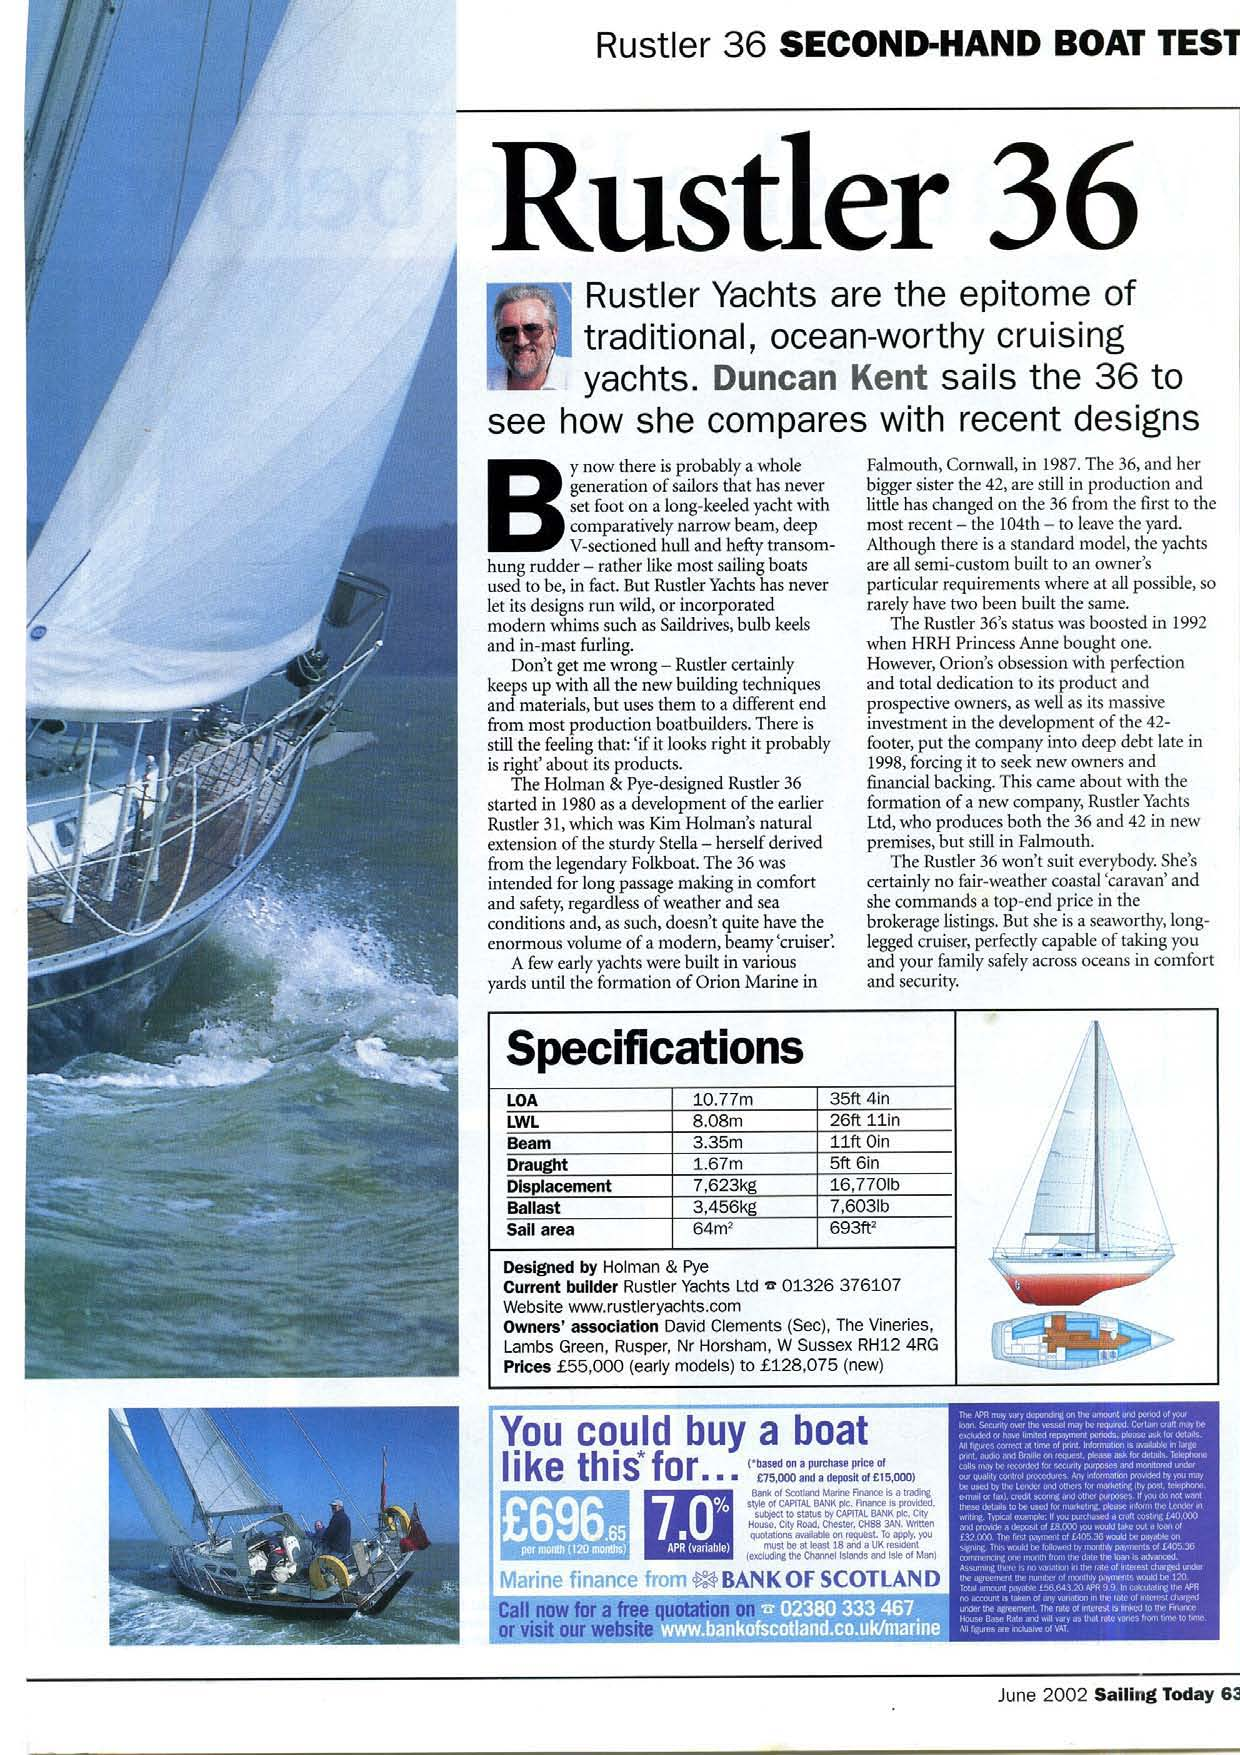 Rustler-36-review-ST62-June-2002-Sailor Today Pagina 3.jpg